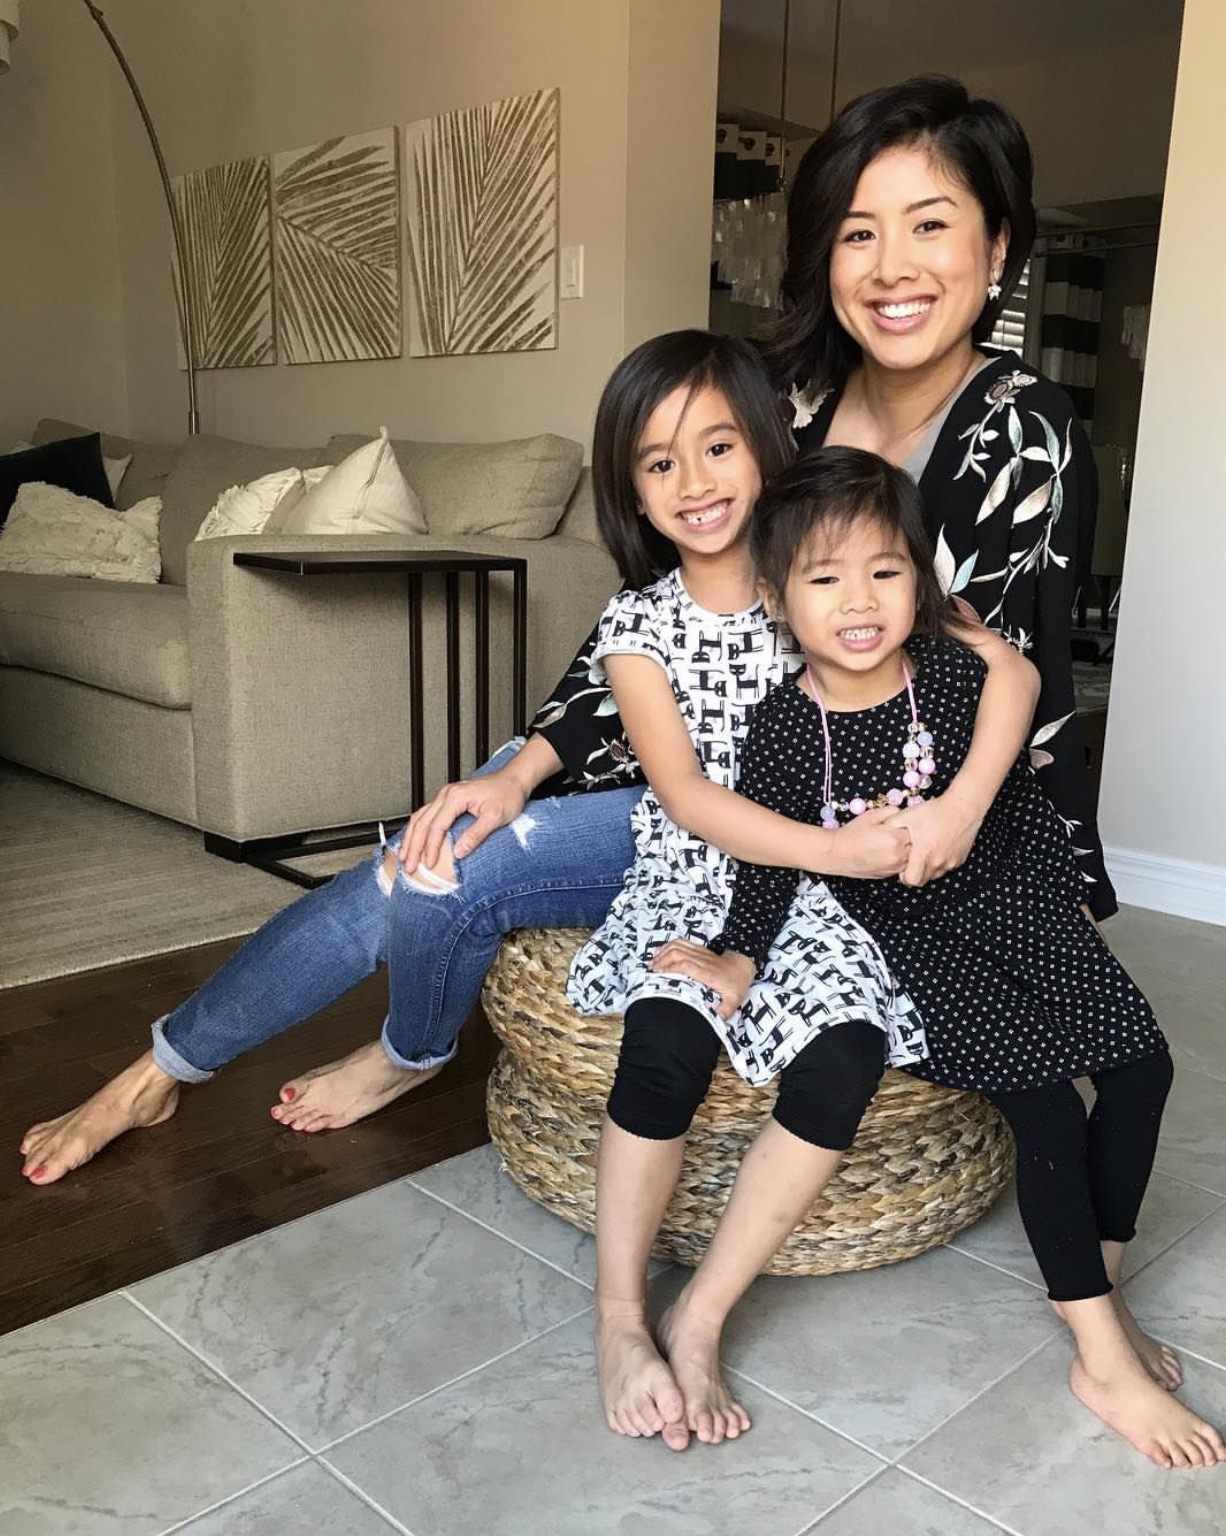 Denise and her two beautiful daughters.